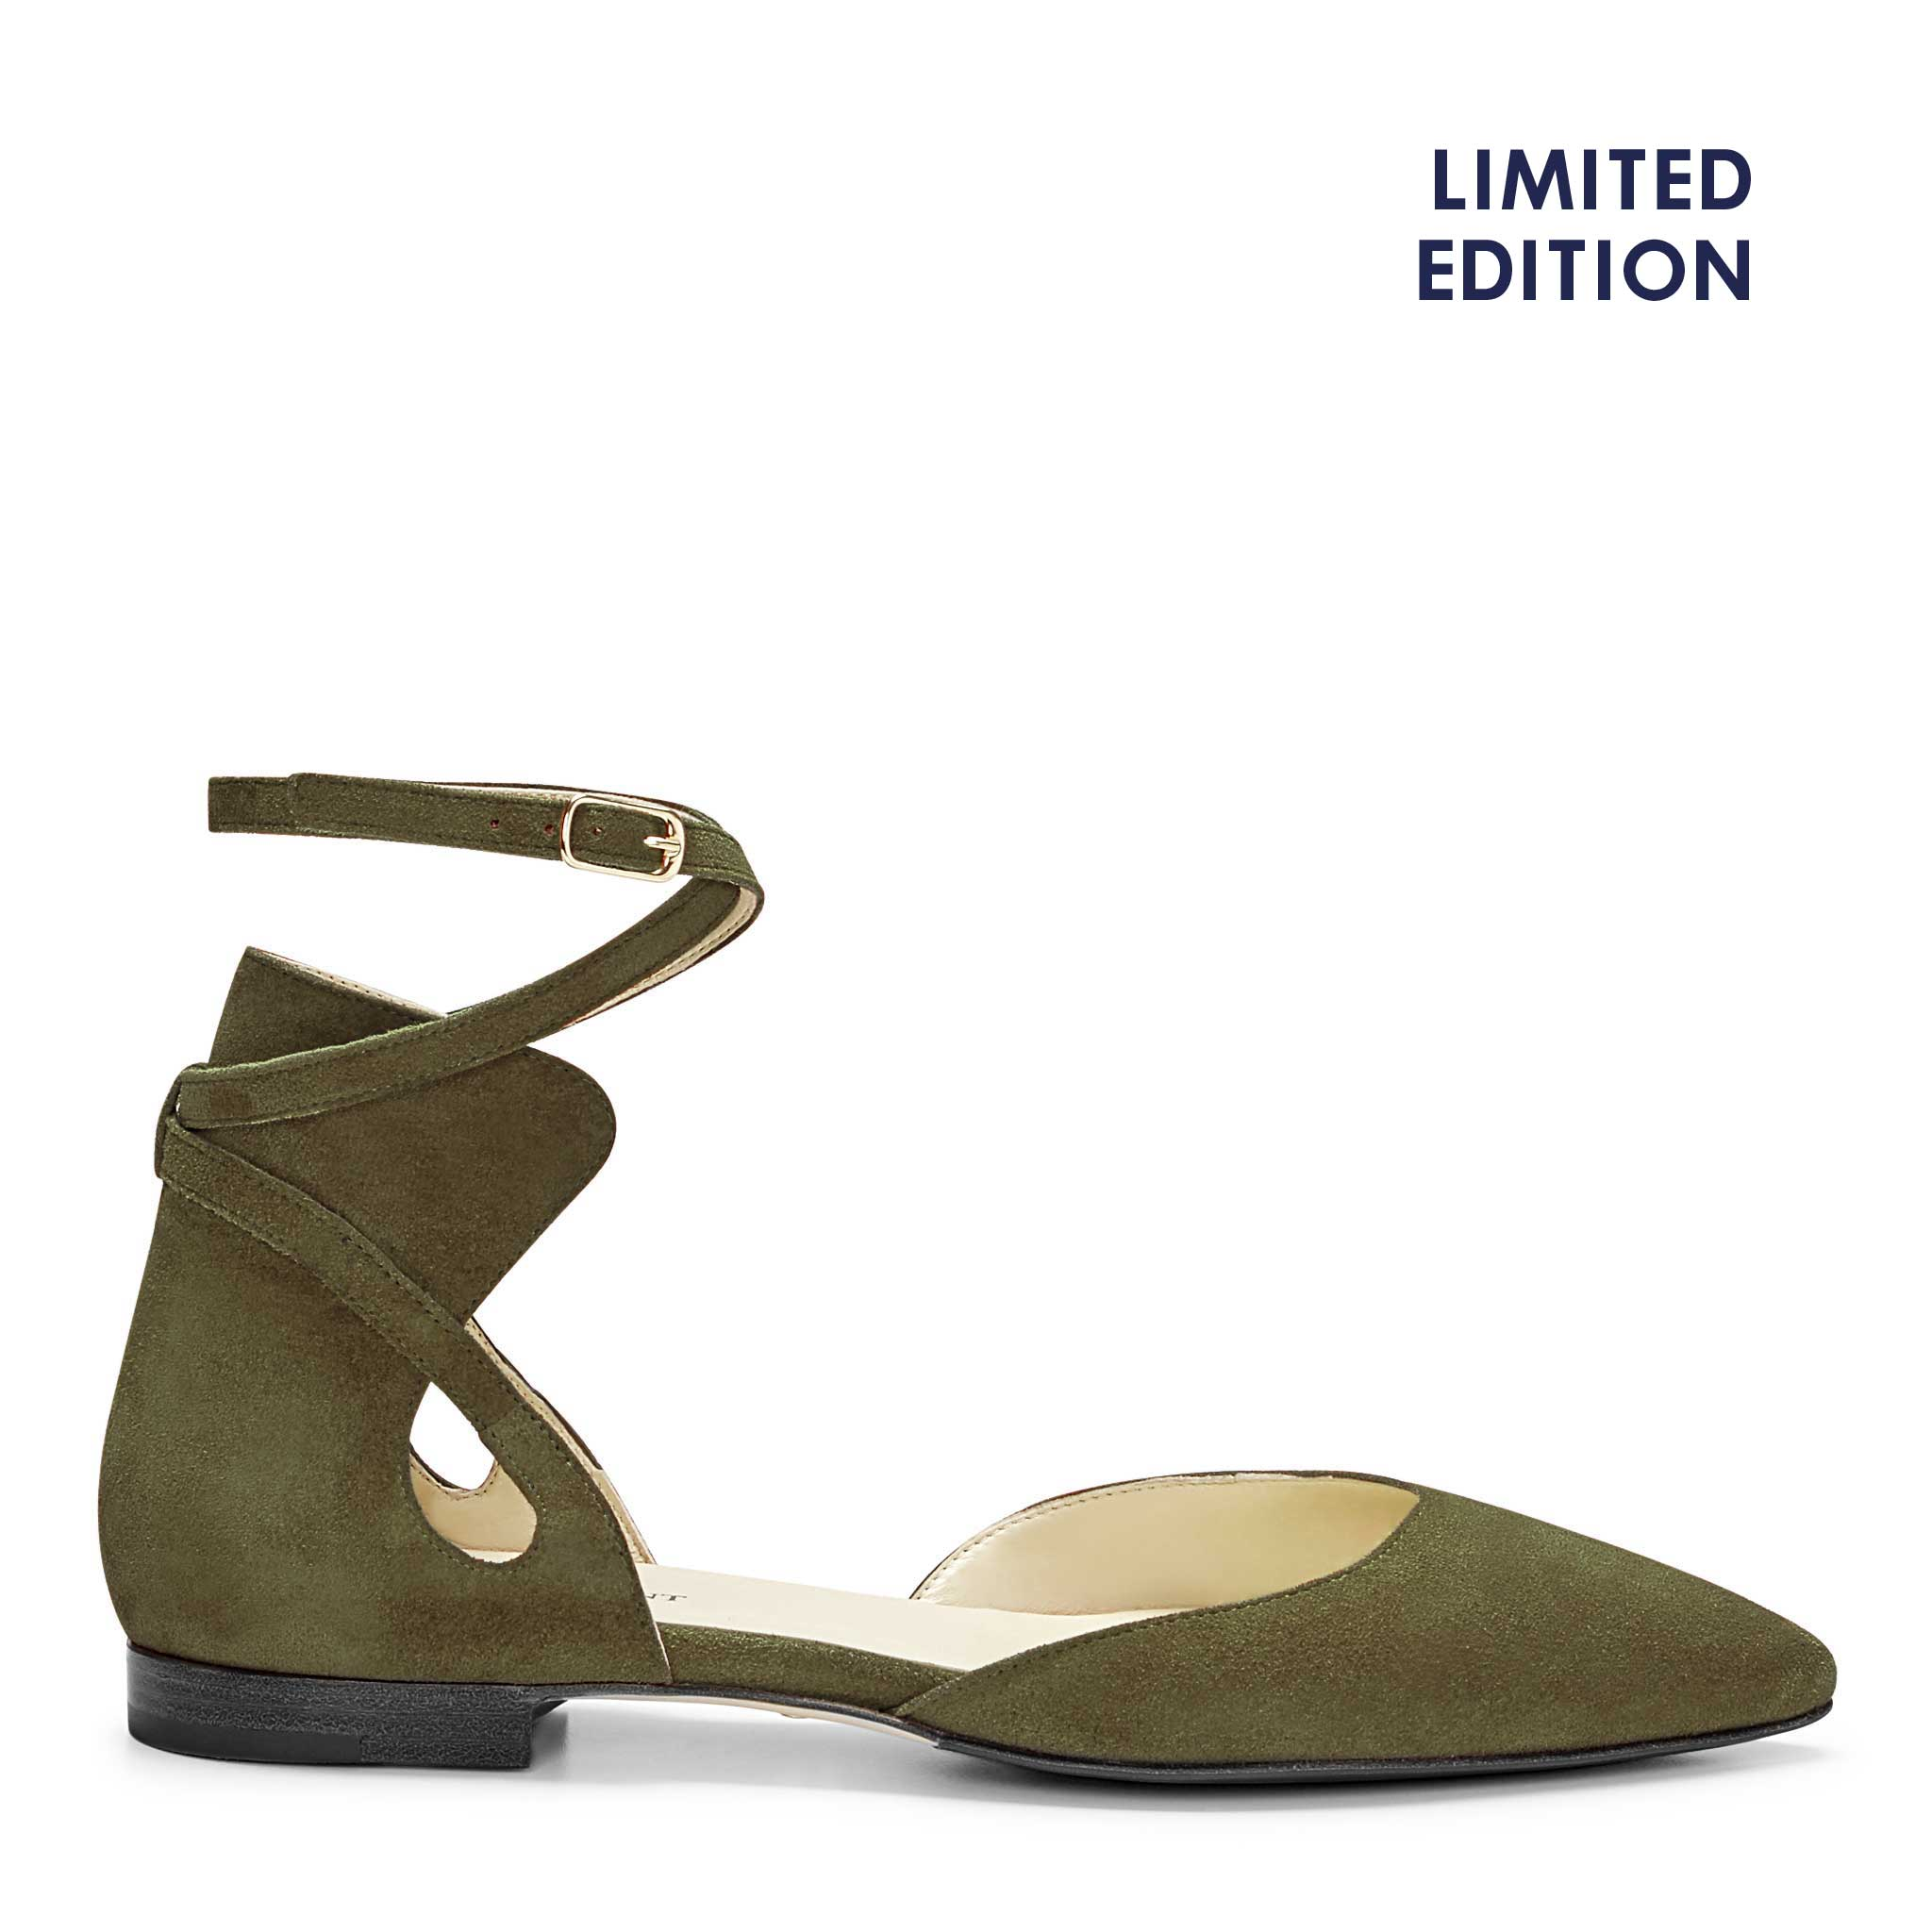 COLOR|Olive Crosta Suede